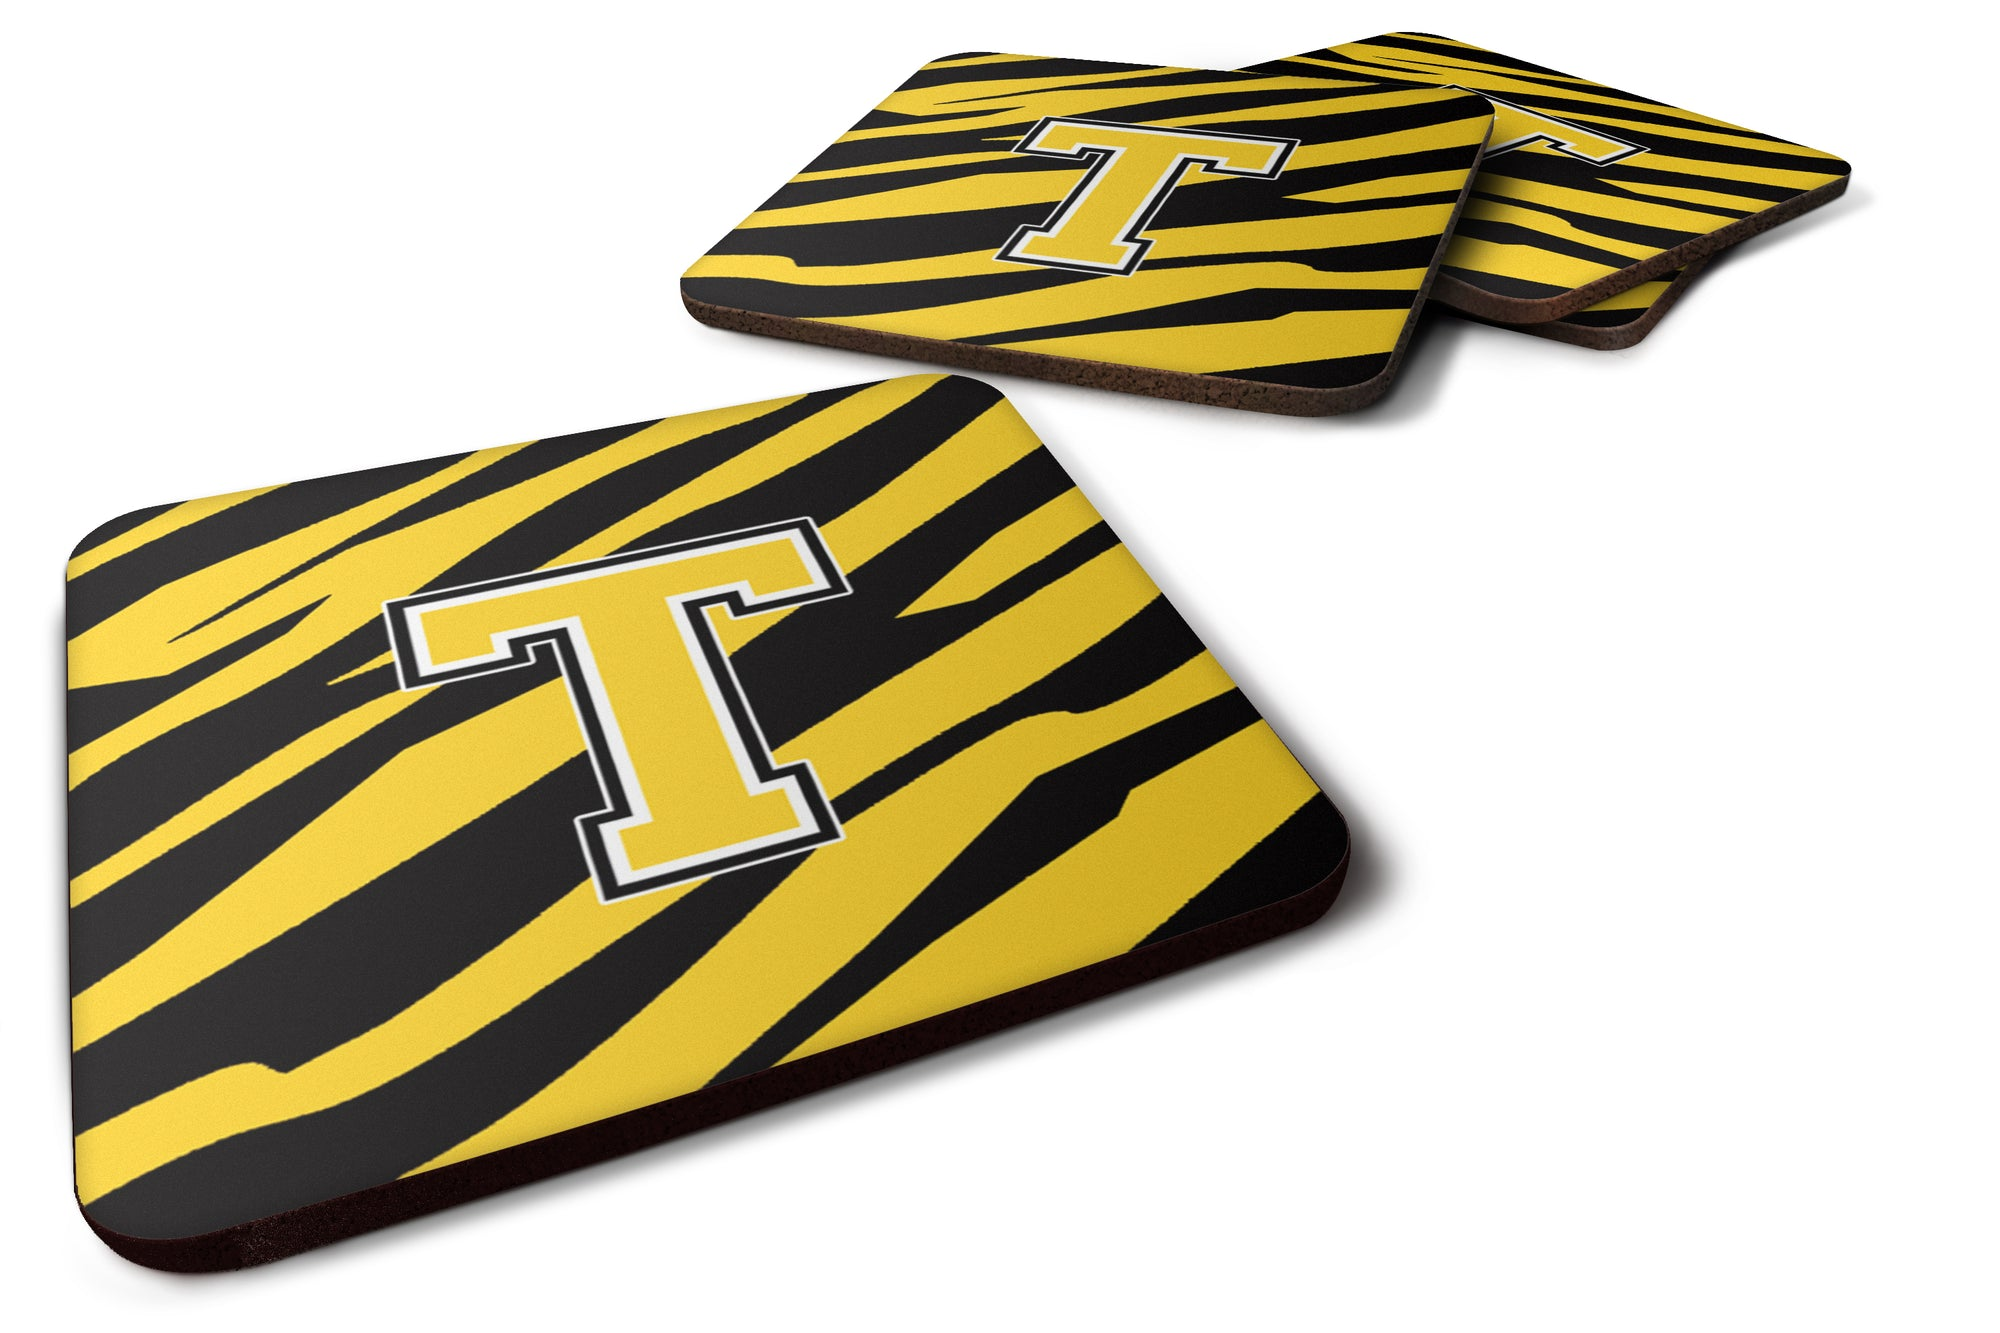 Set of 4 Monogram - Tiger Stripe - Black Gold Foam Coasters Initial Letter T by Caroline's Treasures